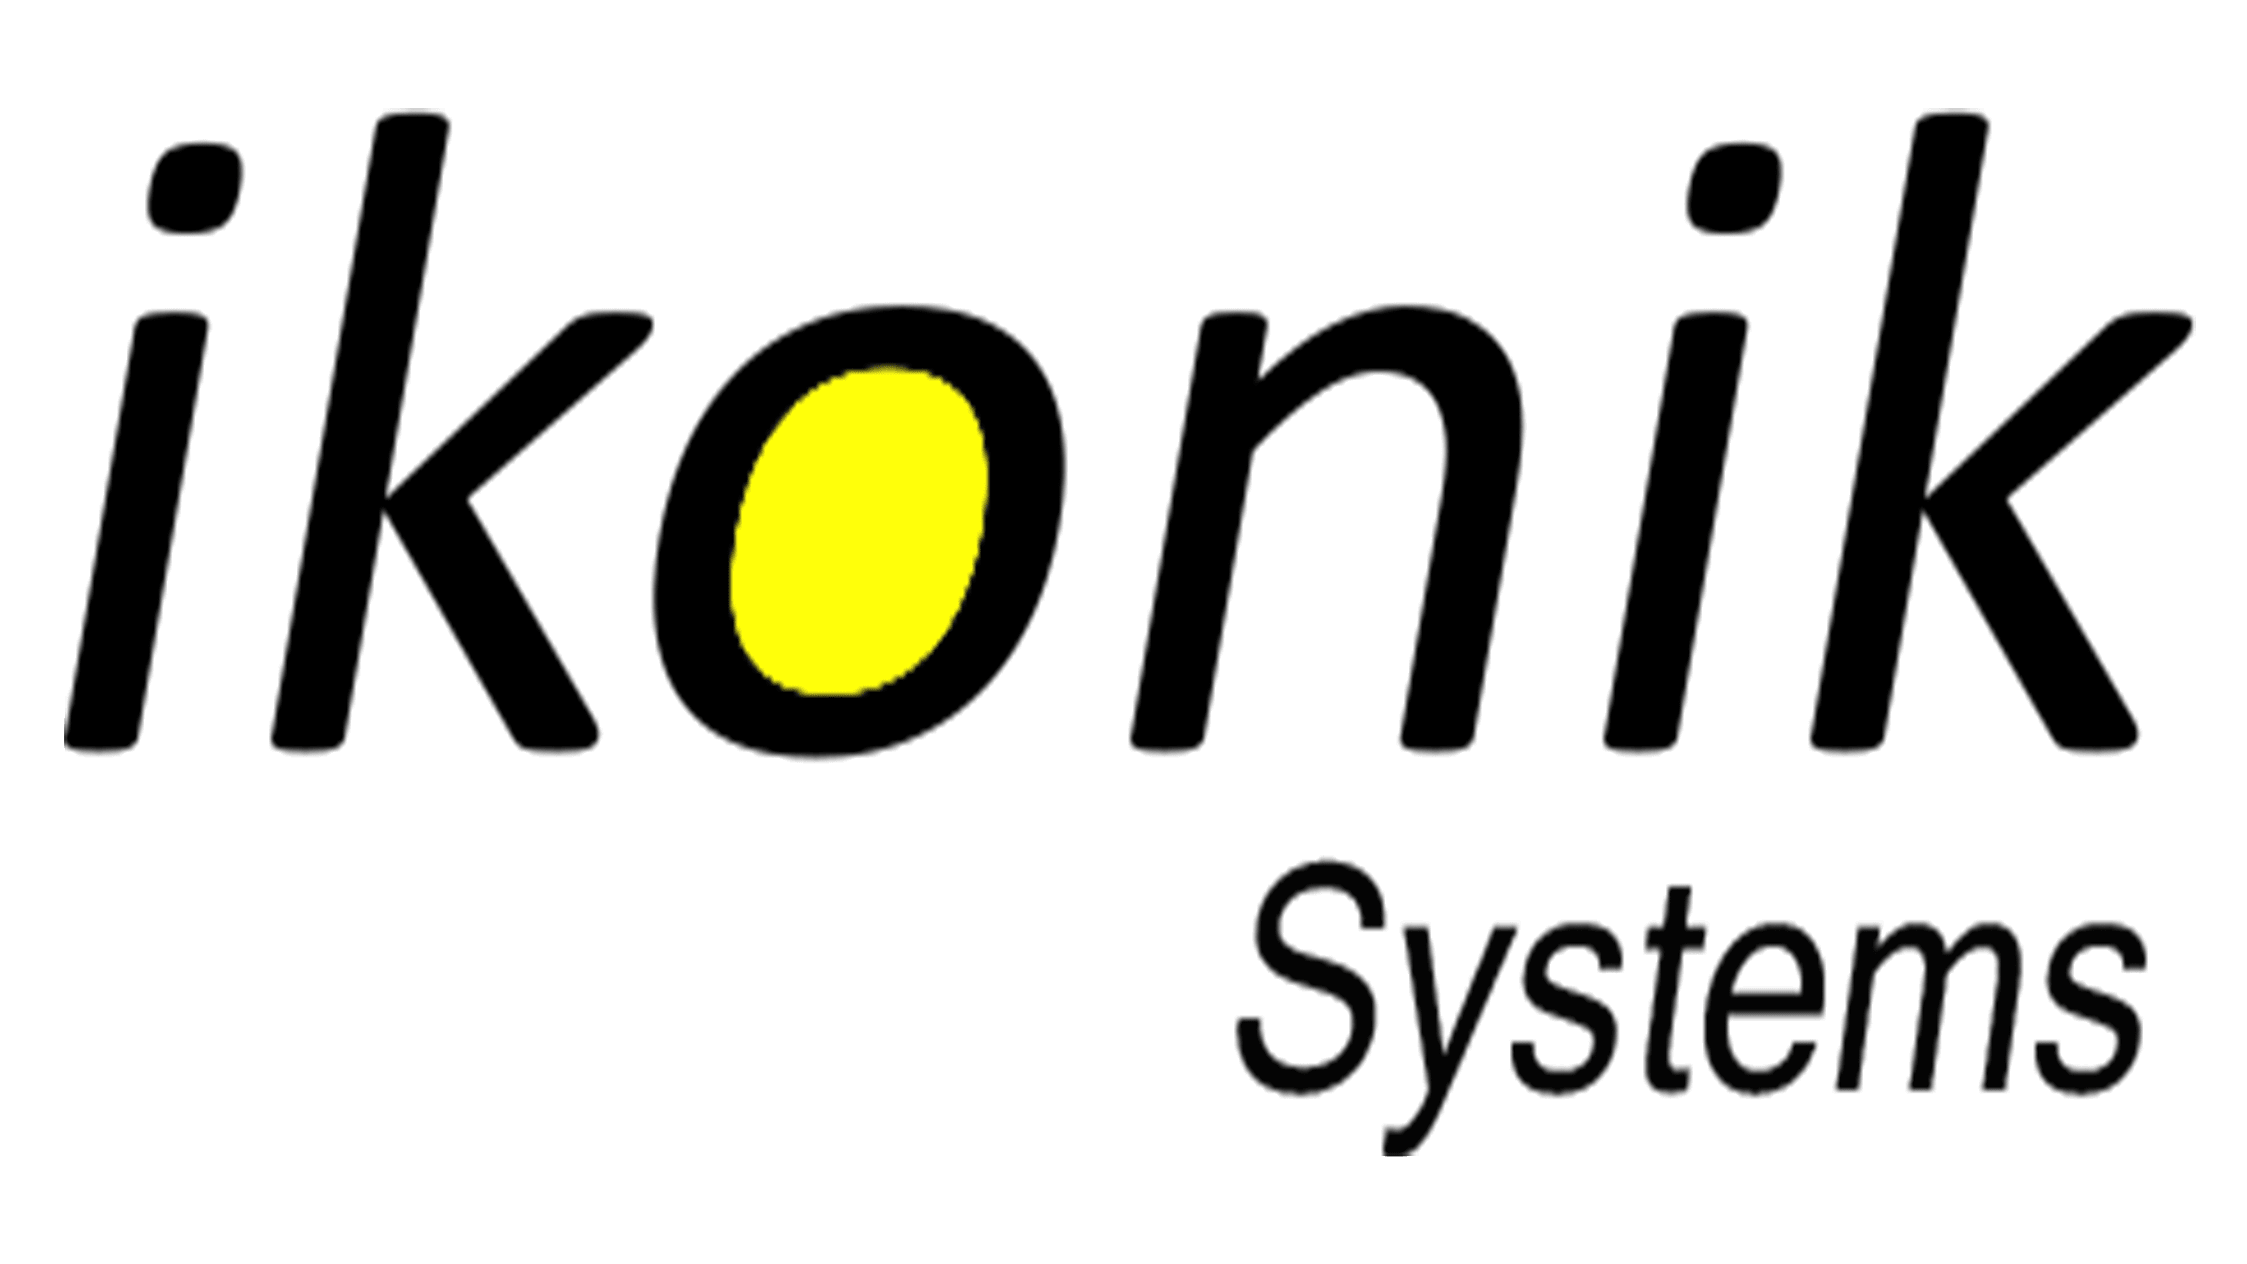 ikonik systems AB